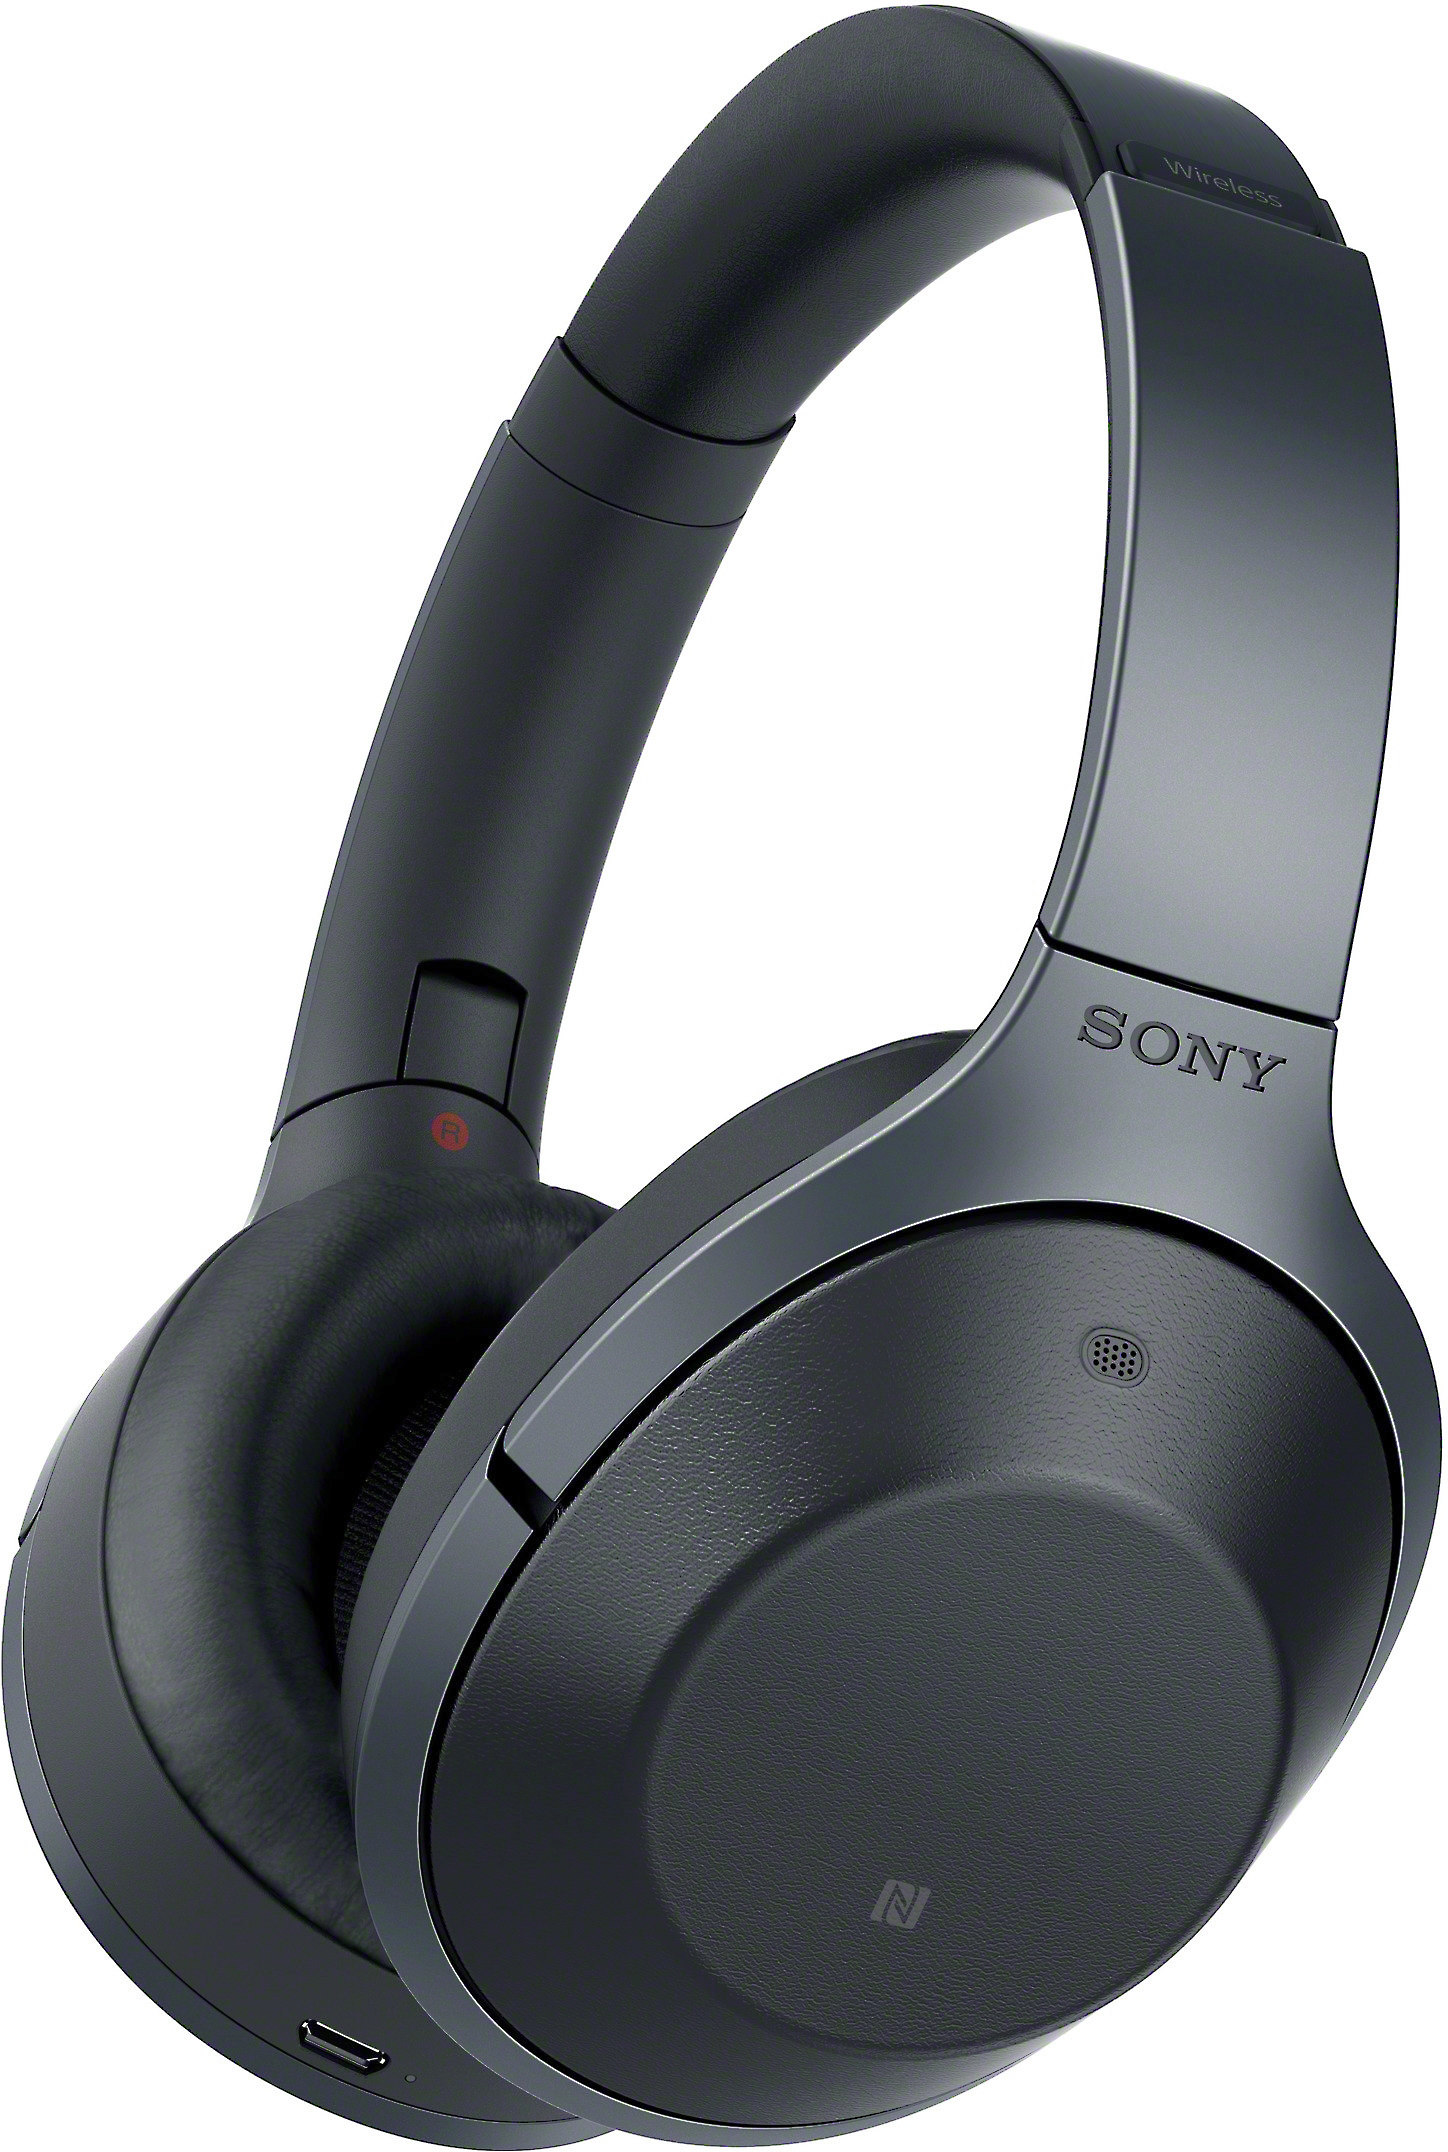 bfb5e906172 Sony MDR-1000X (Black) Over-ear Bluetooth® wireless noise-canceling  headphones at Crutchfield.com